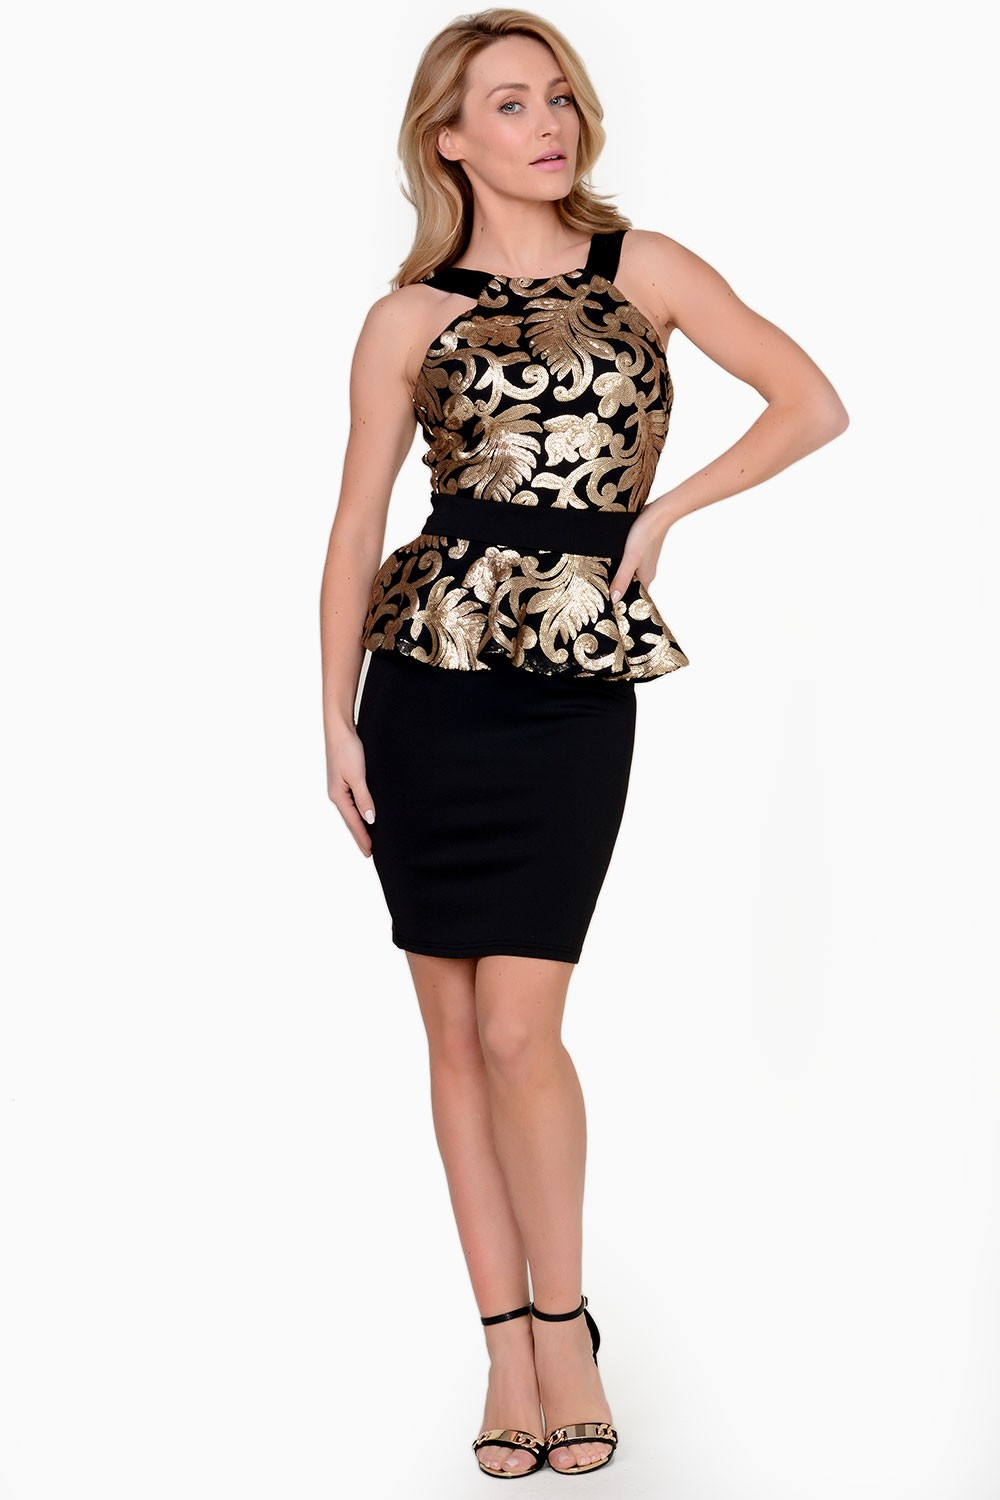 Jane Damask Sequin Peplum Dress In Black And Gold Iclothing